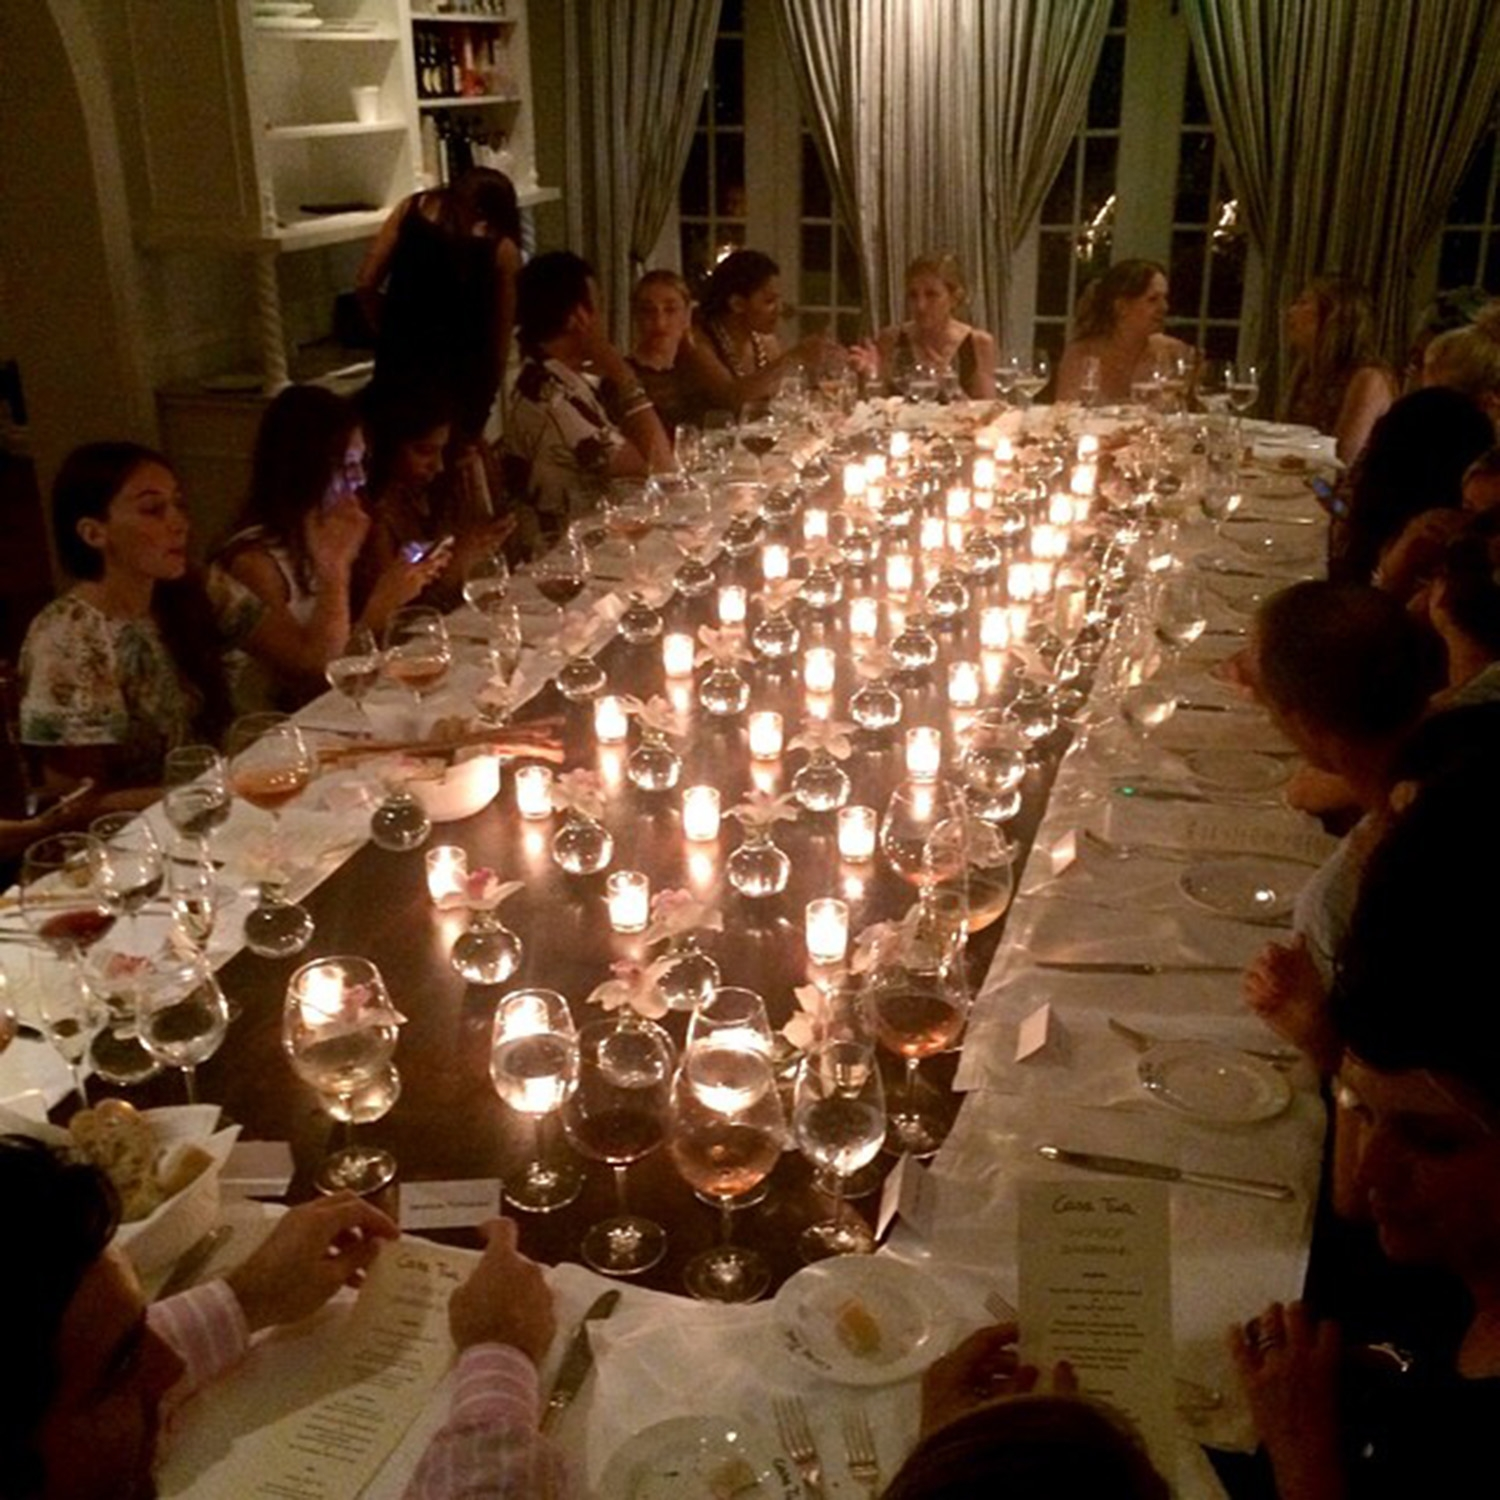 A group sits around a large rectangle dinner table that is lined with plates, wine glasses and candles